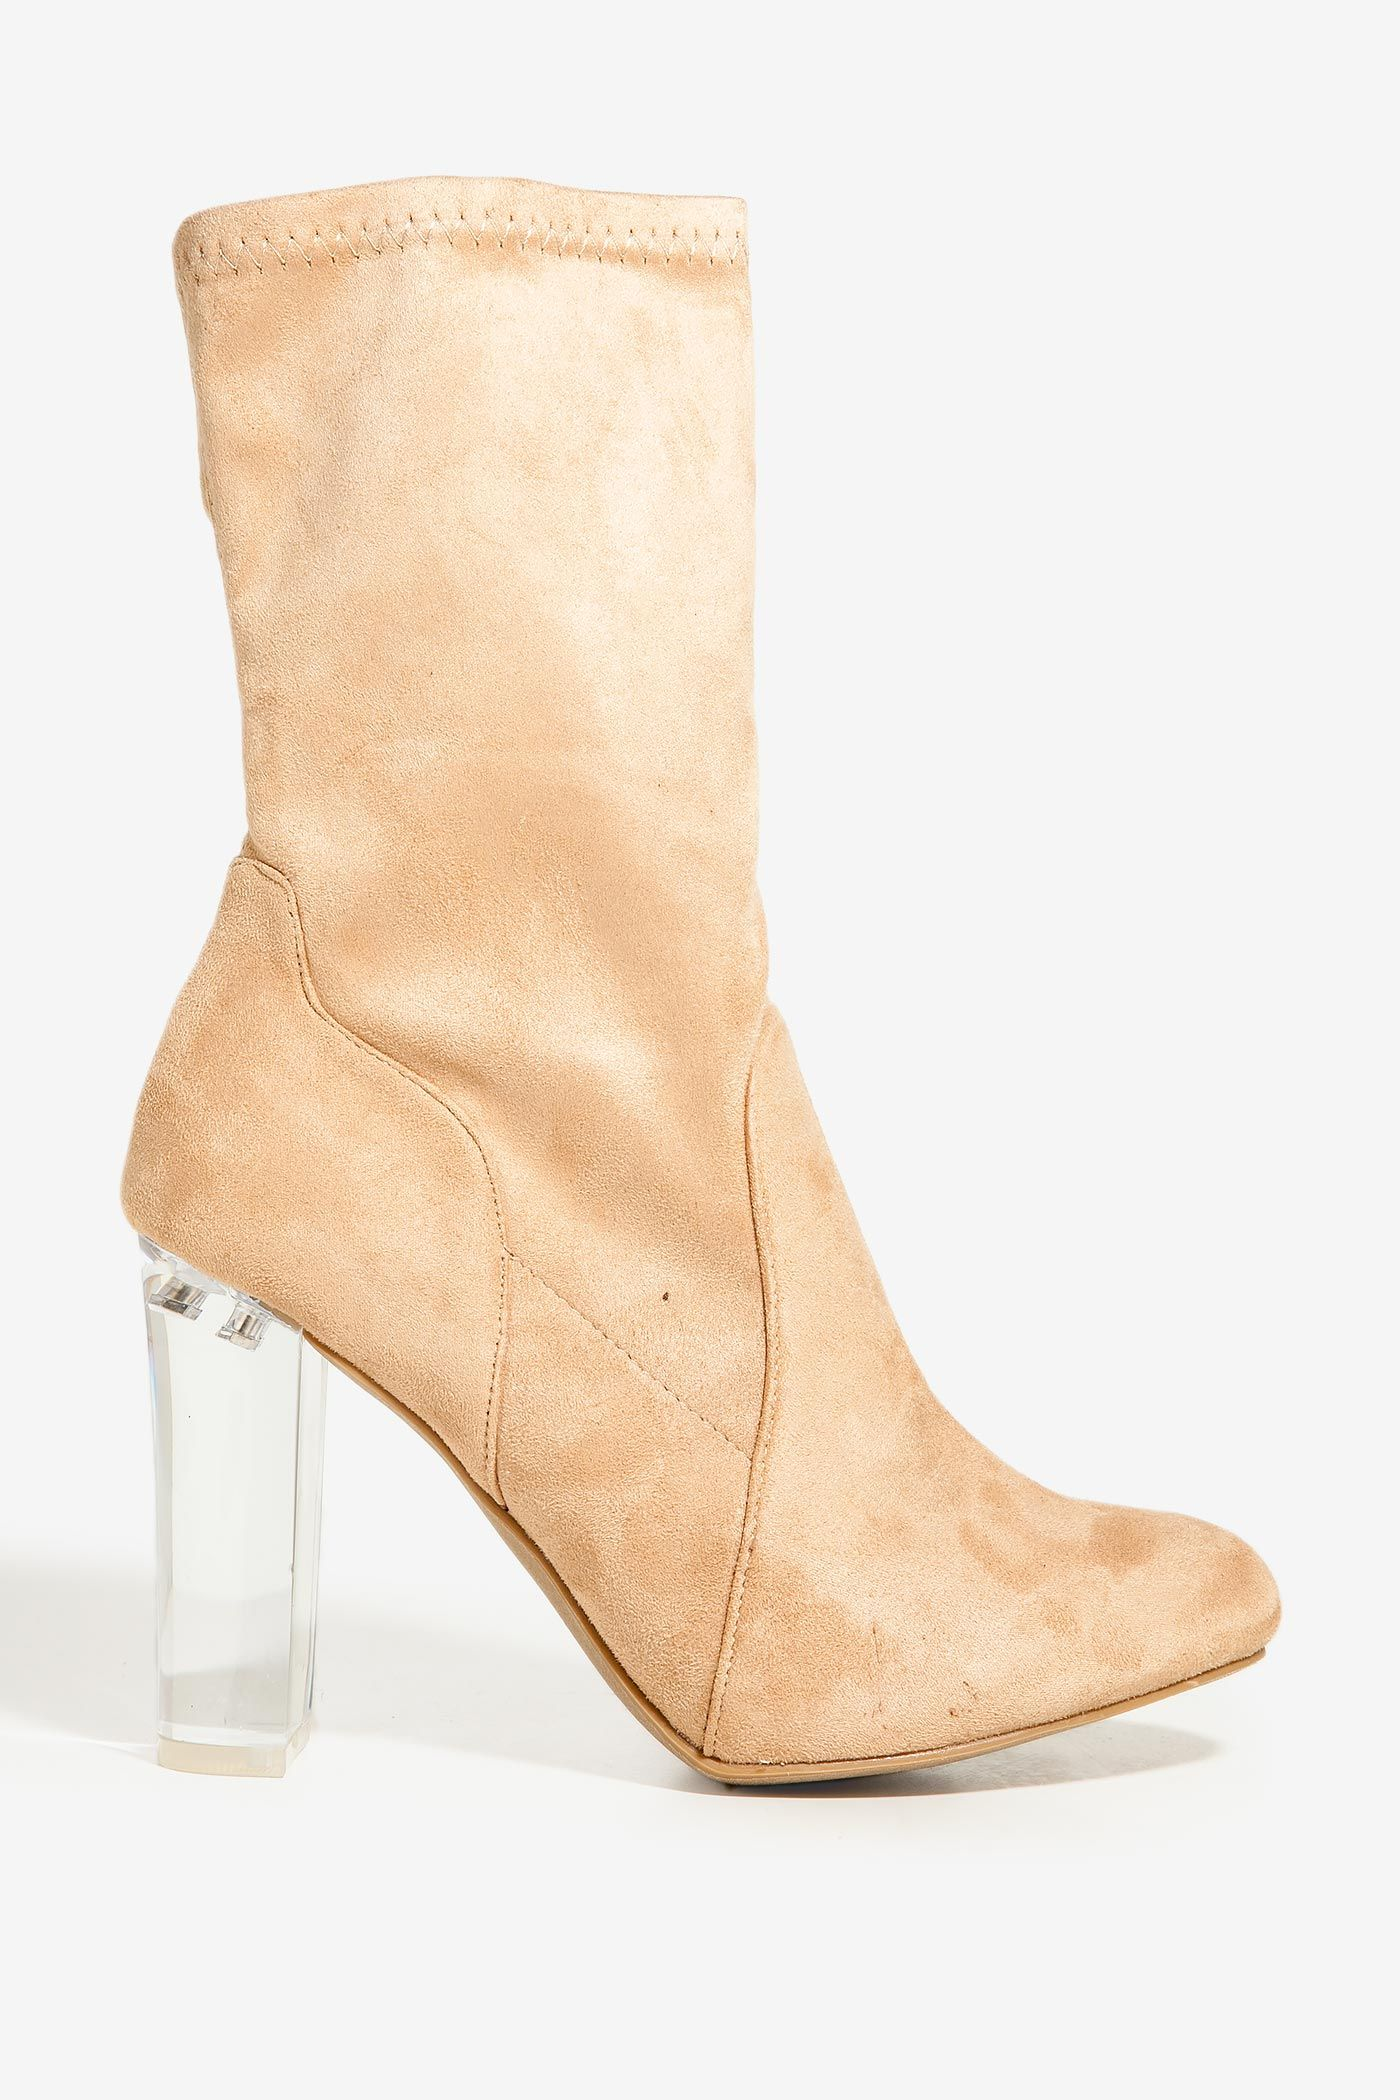 Women's Booties | Crystal Clear Bootie | A'GACI